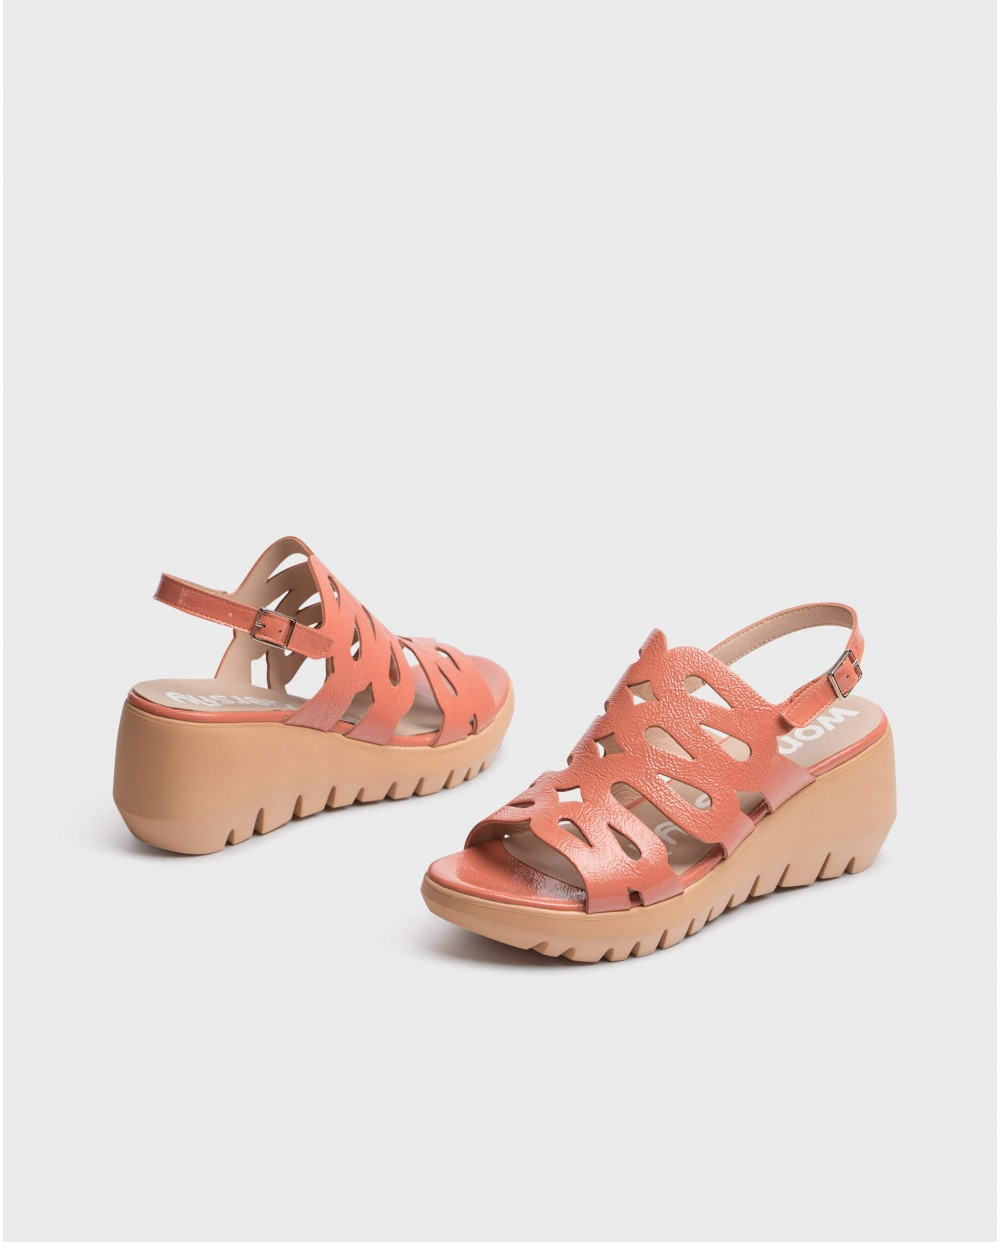 Wonders-Wedges-Sandal with wave straps